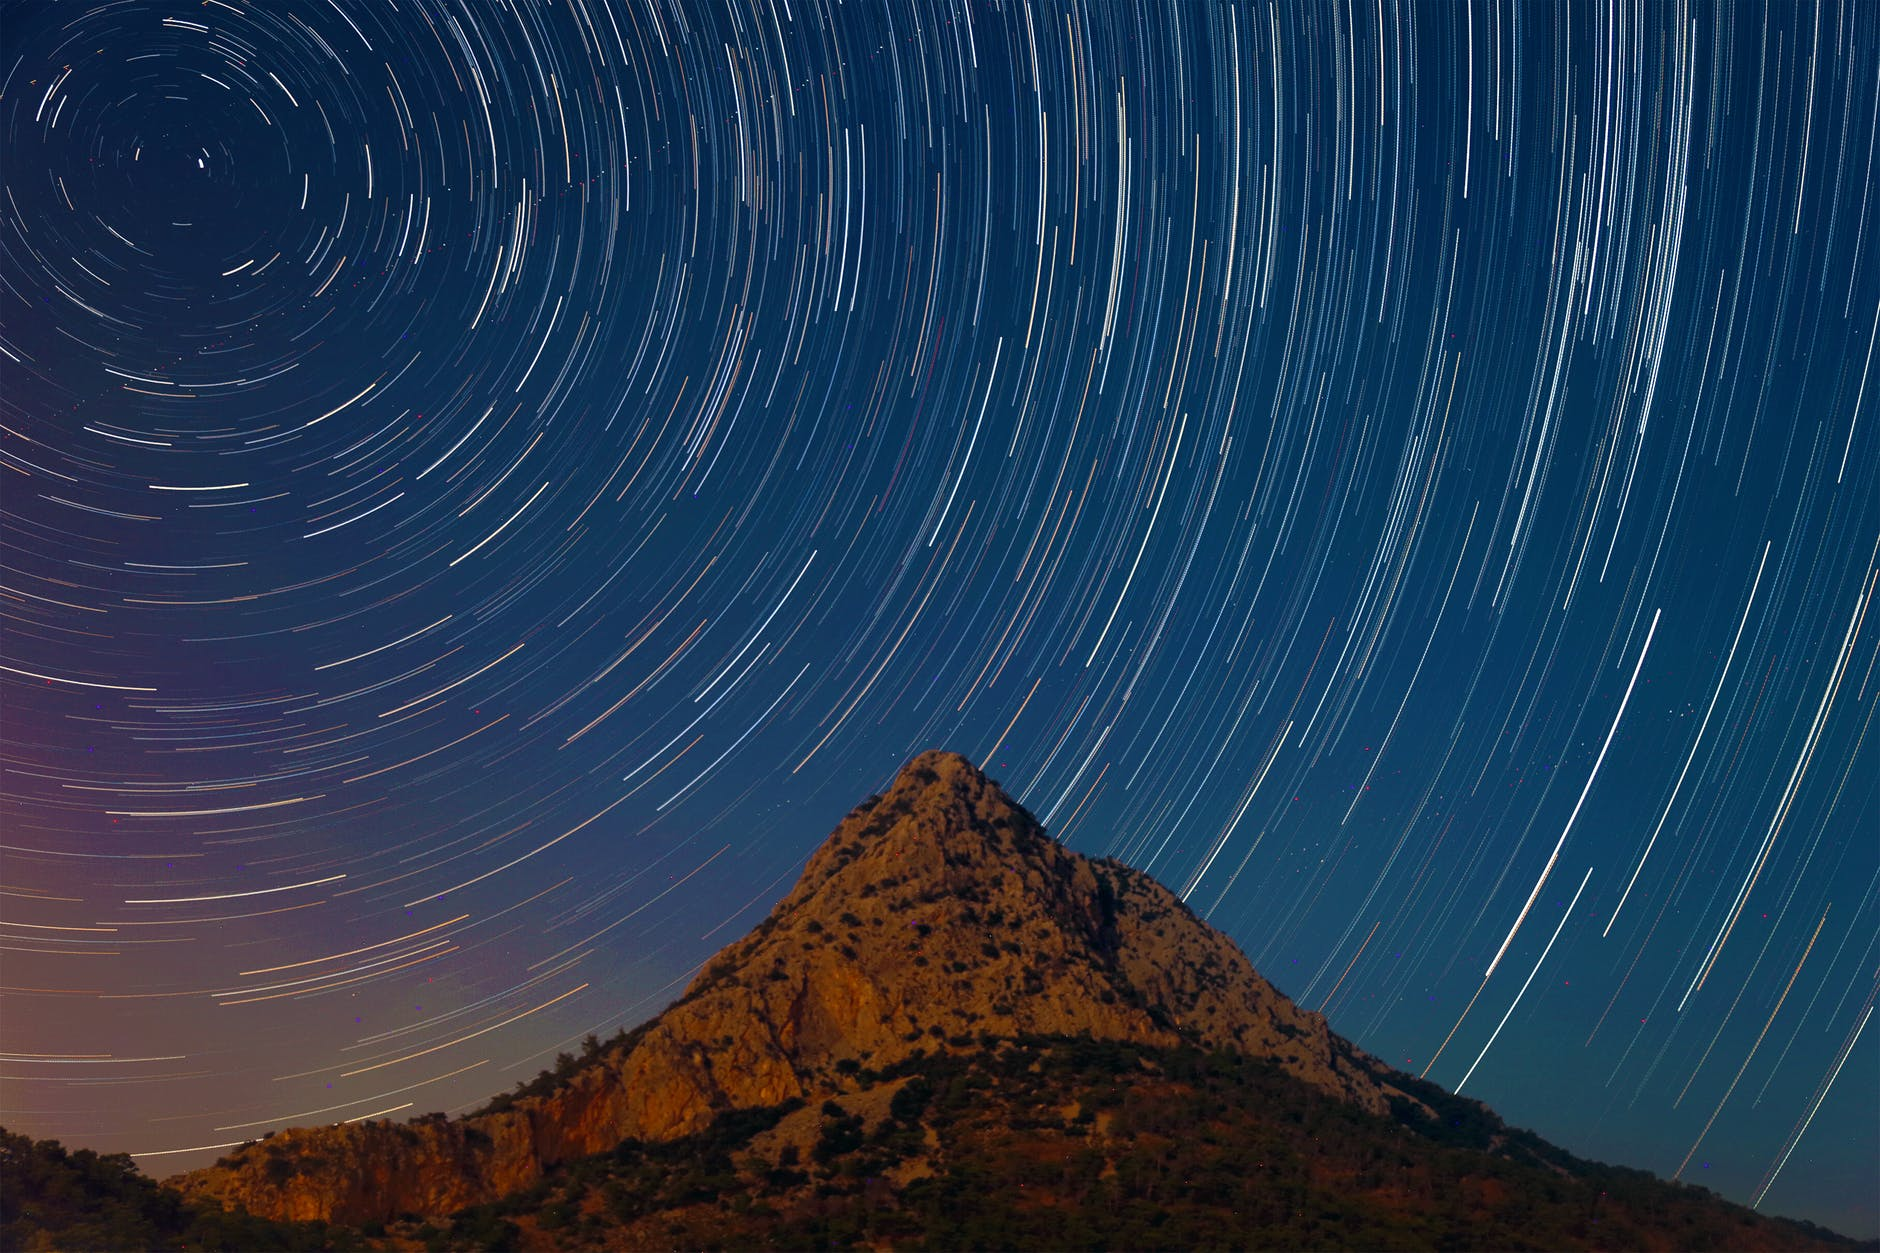 mountain under a starry sky in timelapse mode